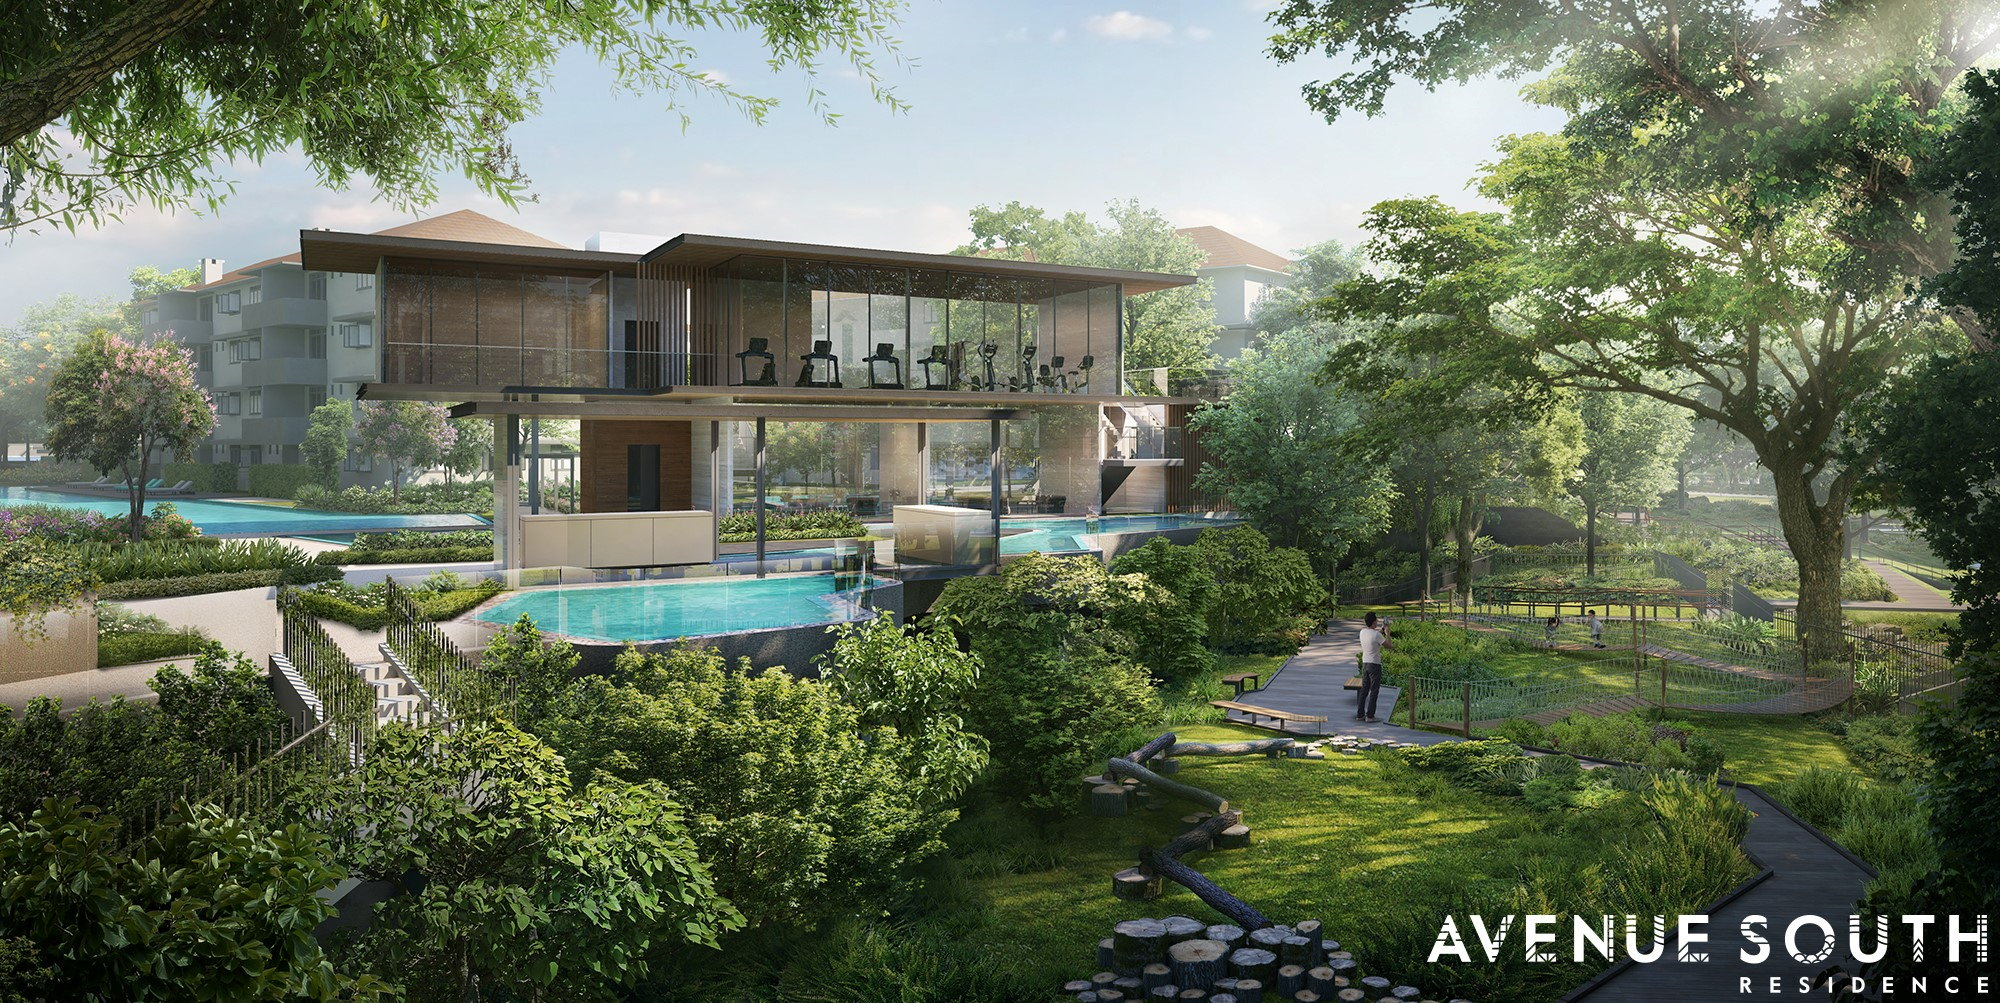 Avenue South Residence image